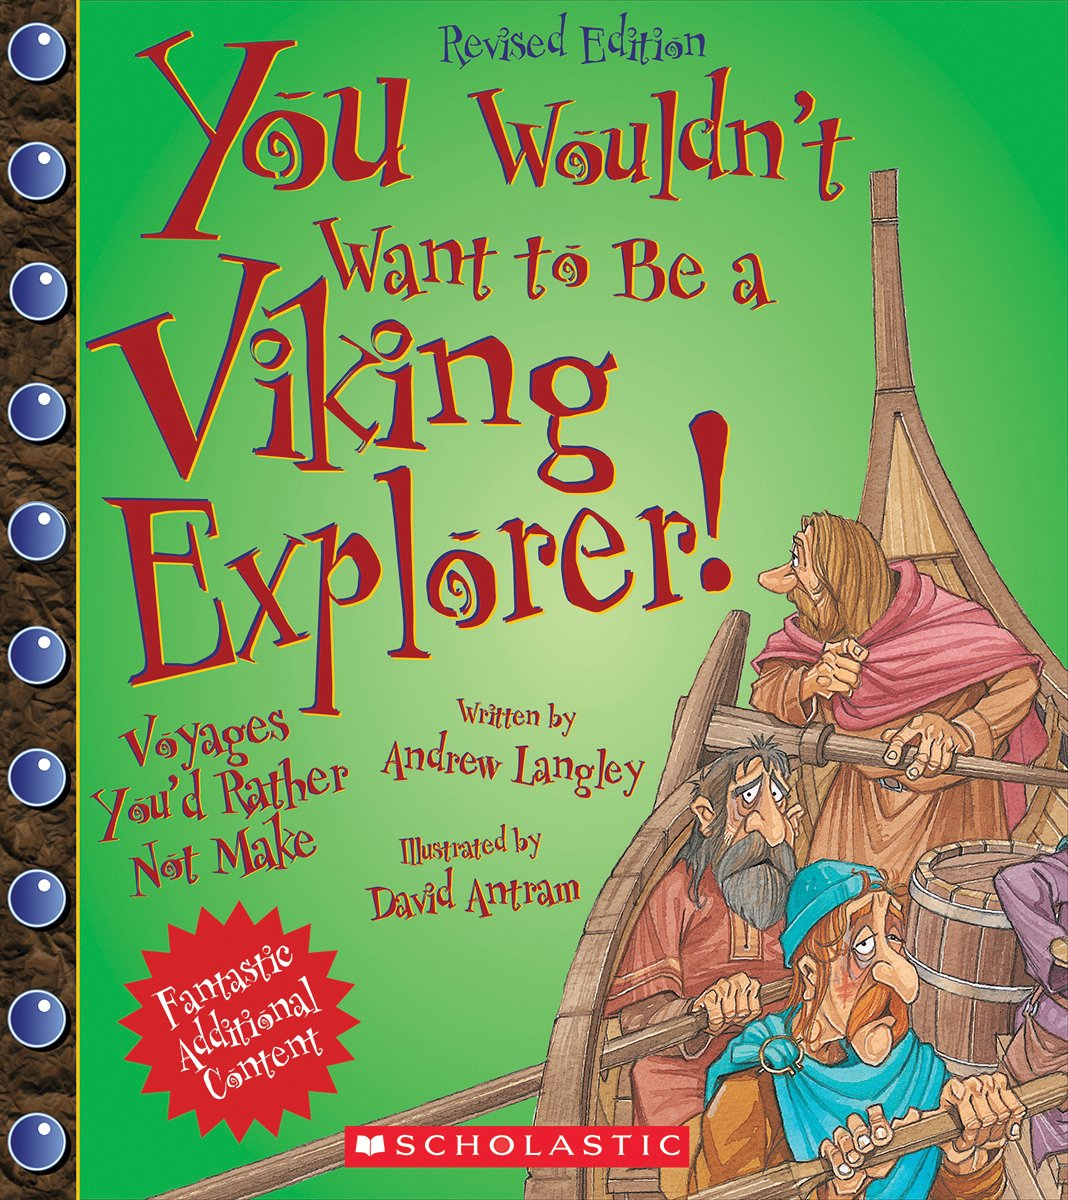 You Wouldn't Want to Be a Viking Explorer!: Voyages You'd Rather Not Make pdf